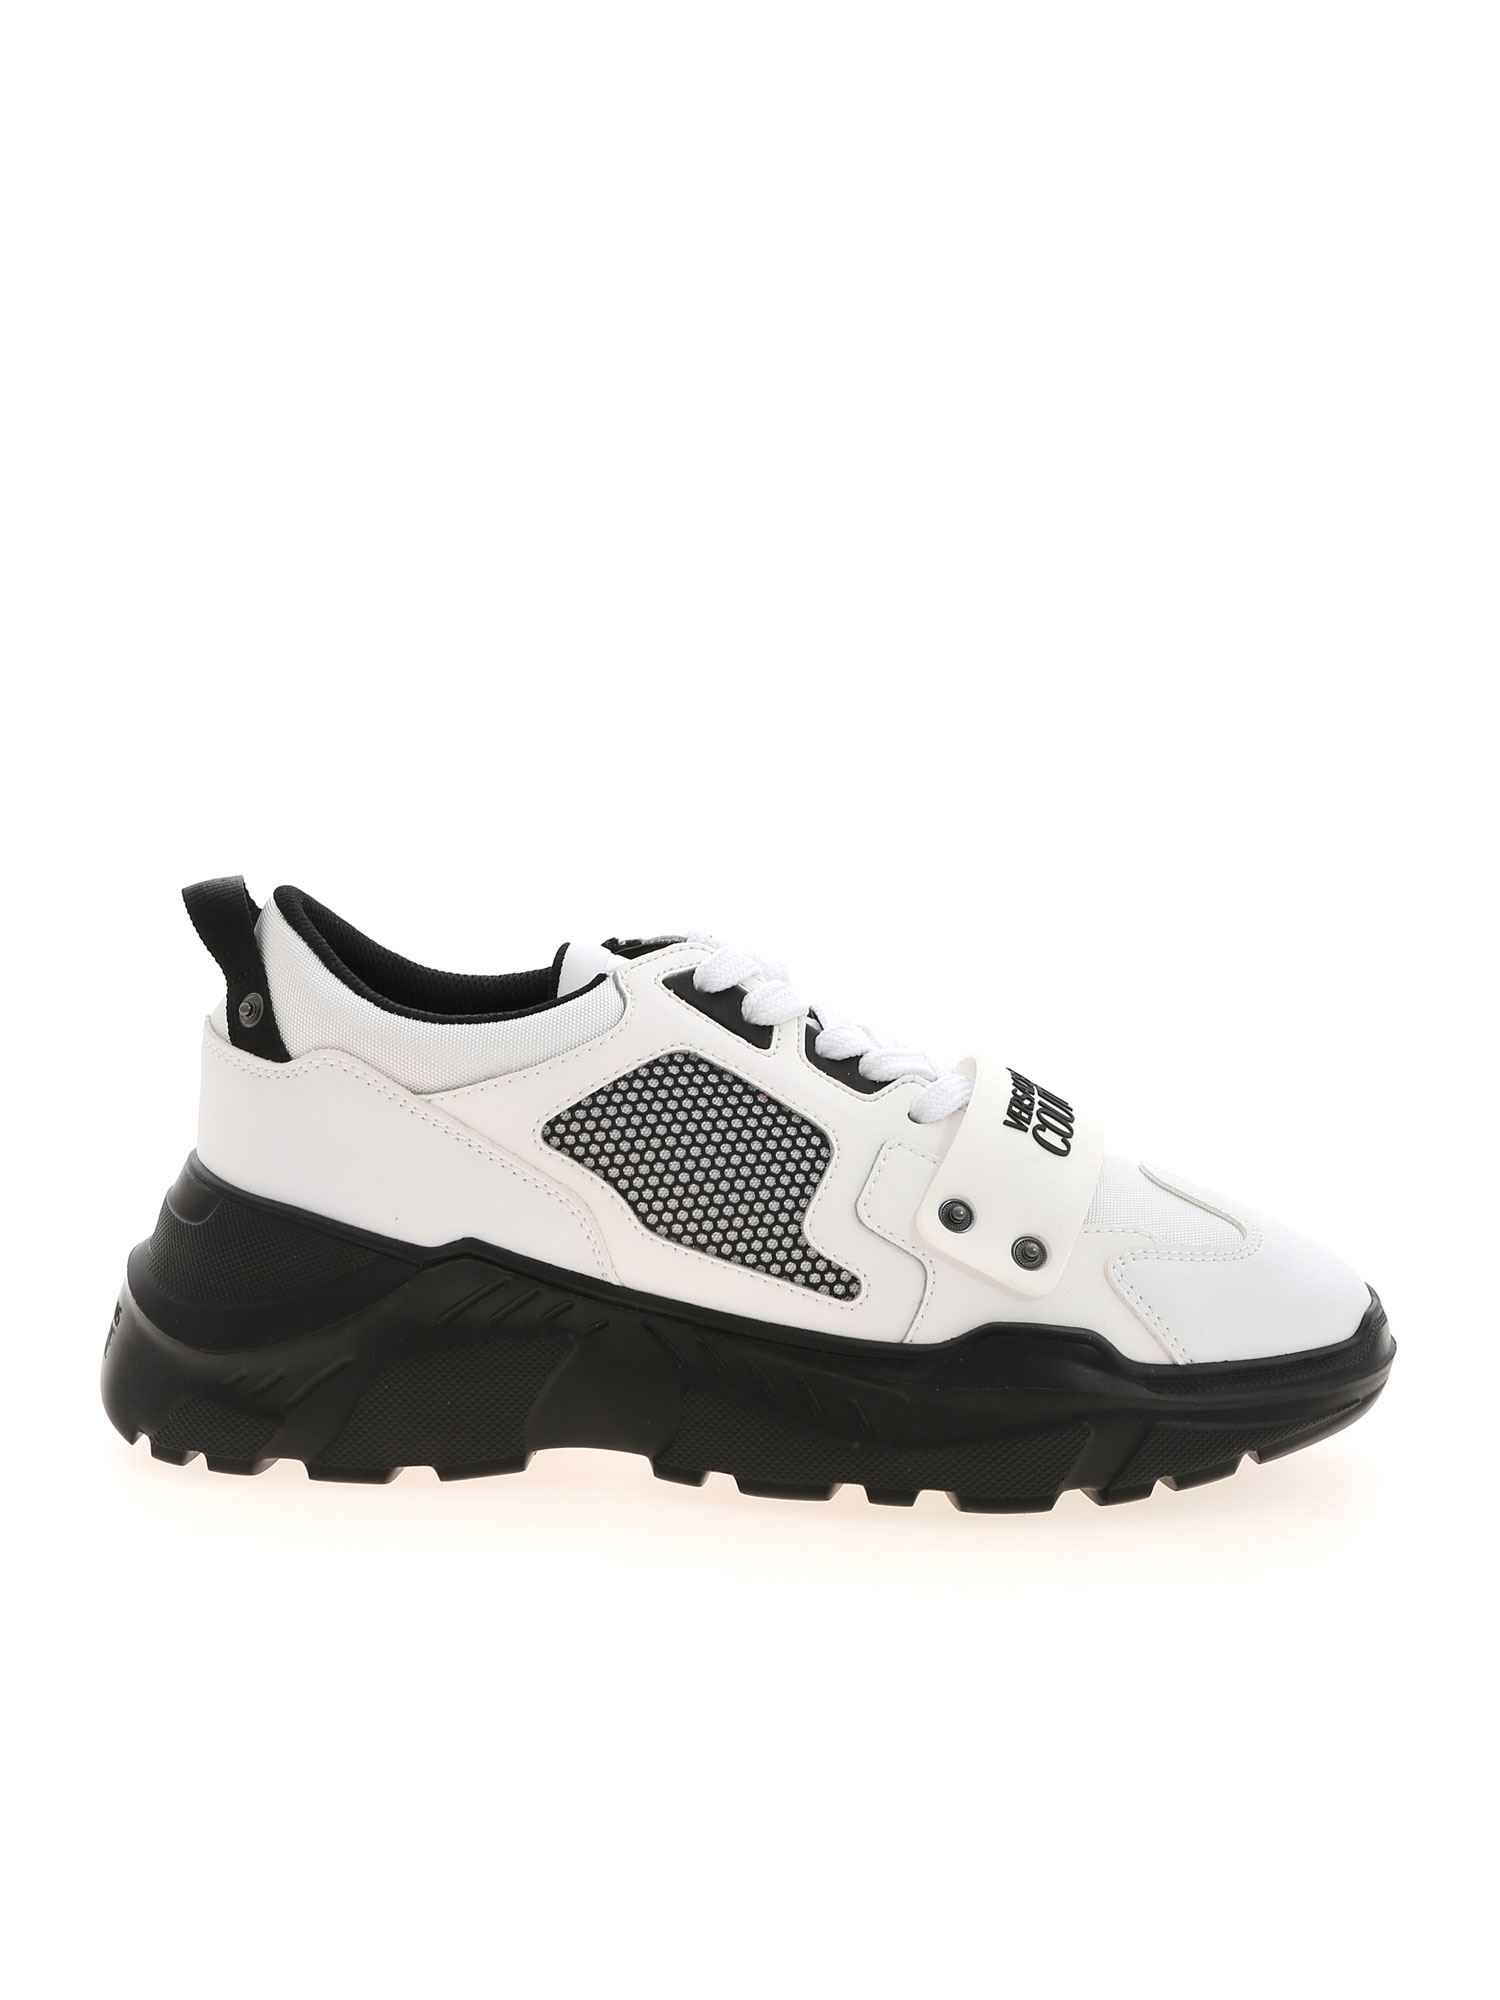 Versace Jeans Couture BRANDED SNEAKERS IN WHITE AND BLACK